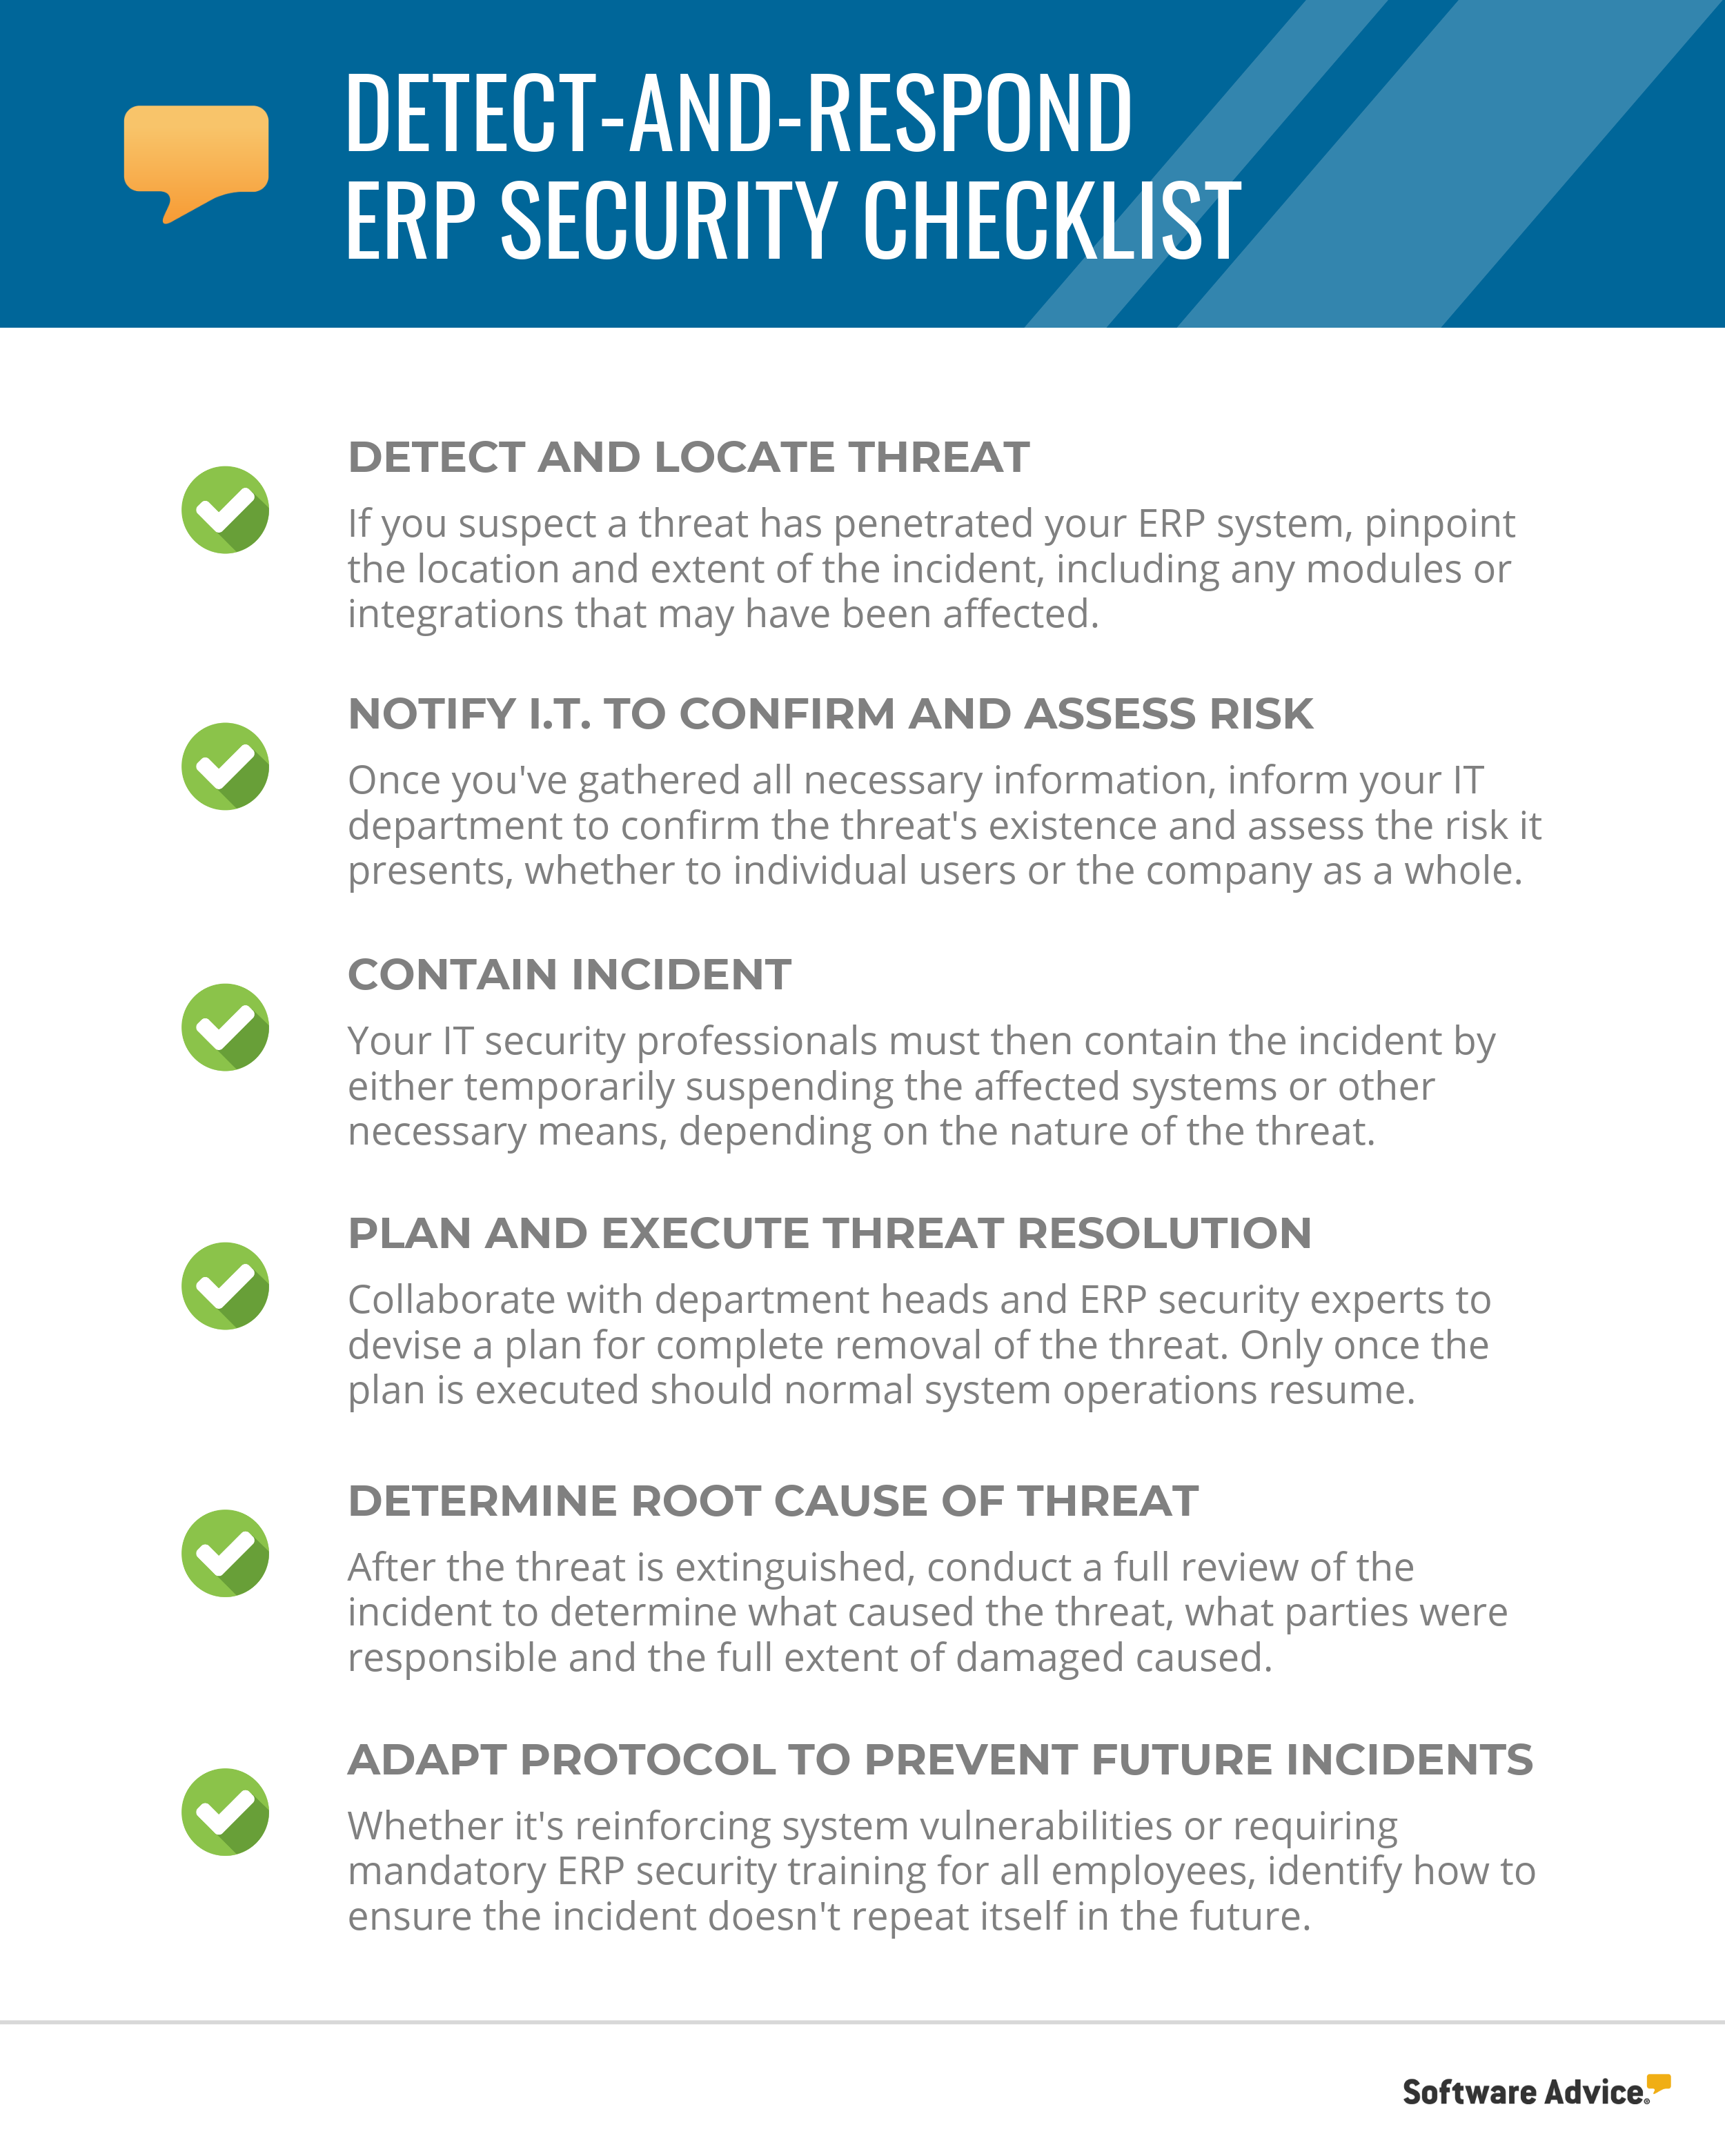 detect-and-respond erp security checklist